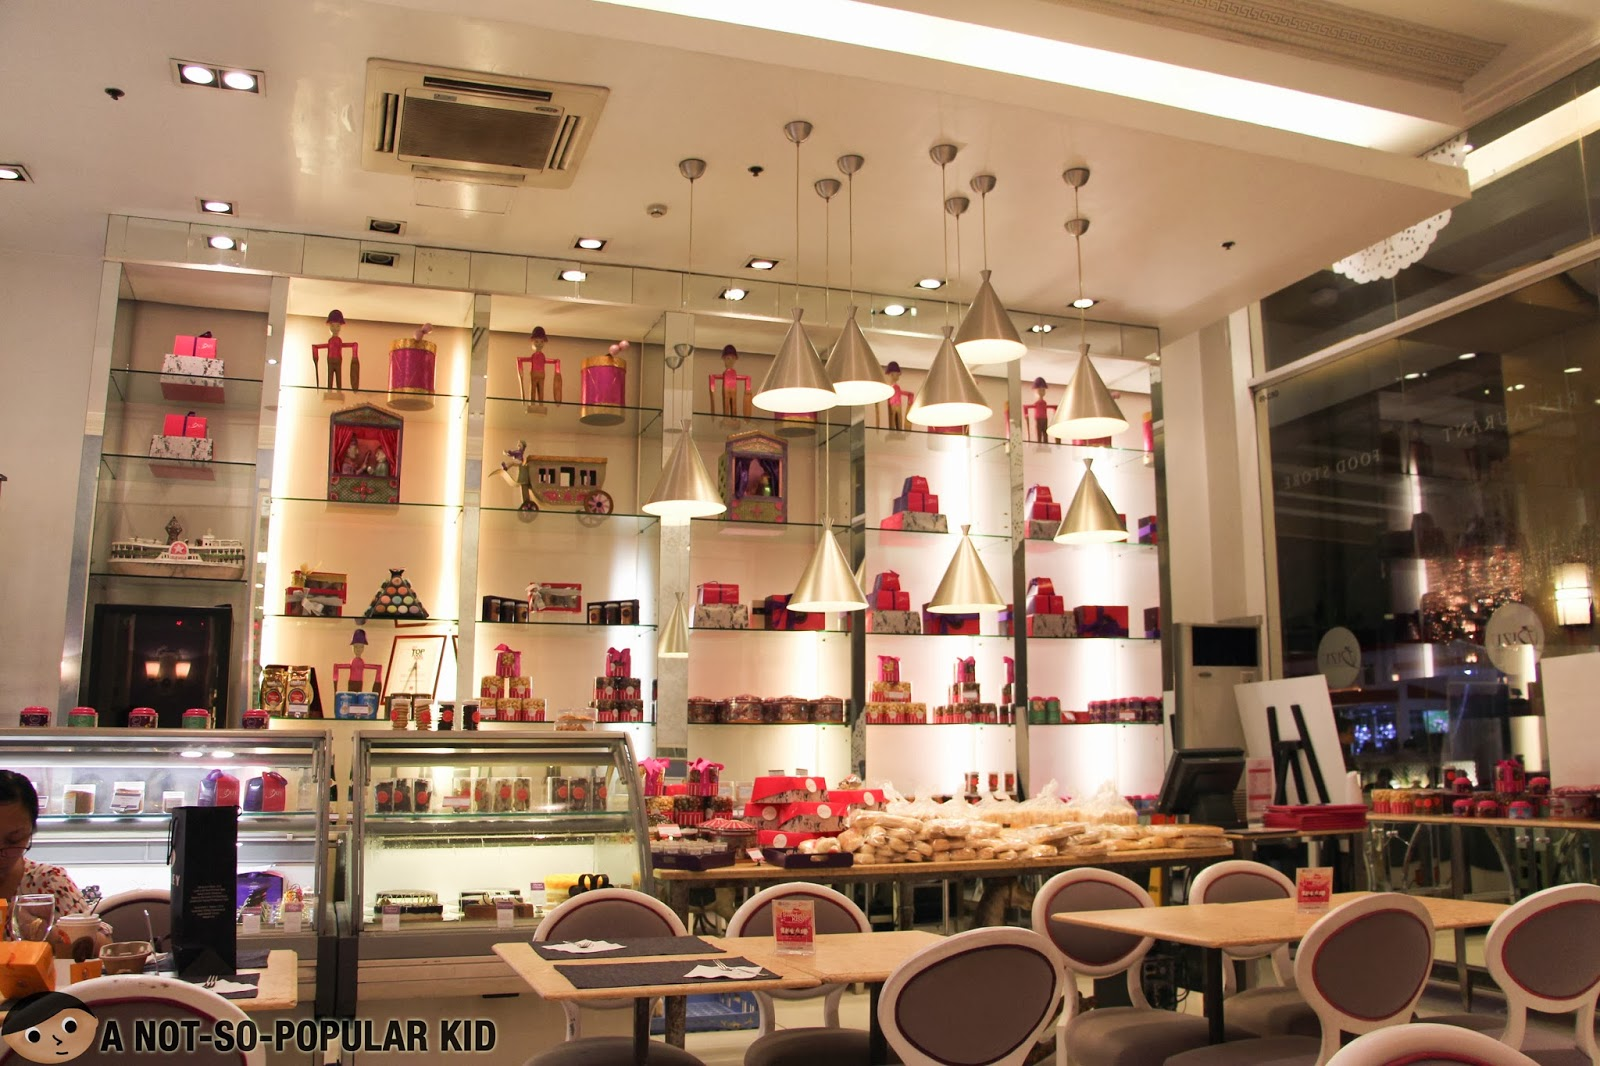 The fascinating pink-violet color-scheme in the interior and designs of BIZU